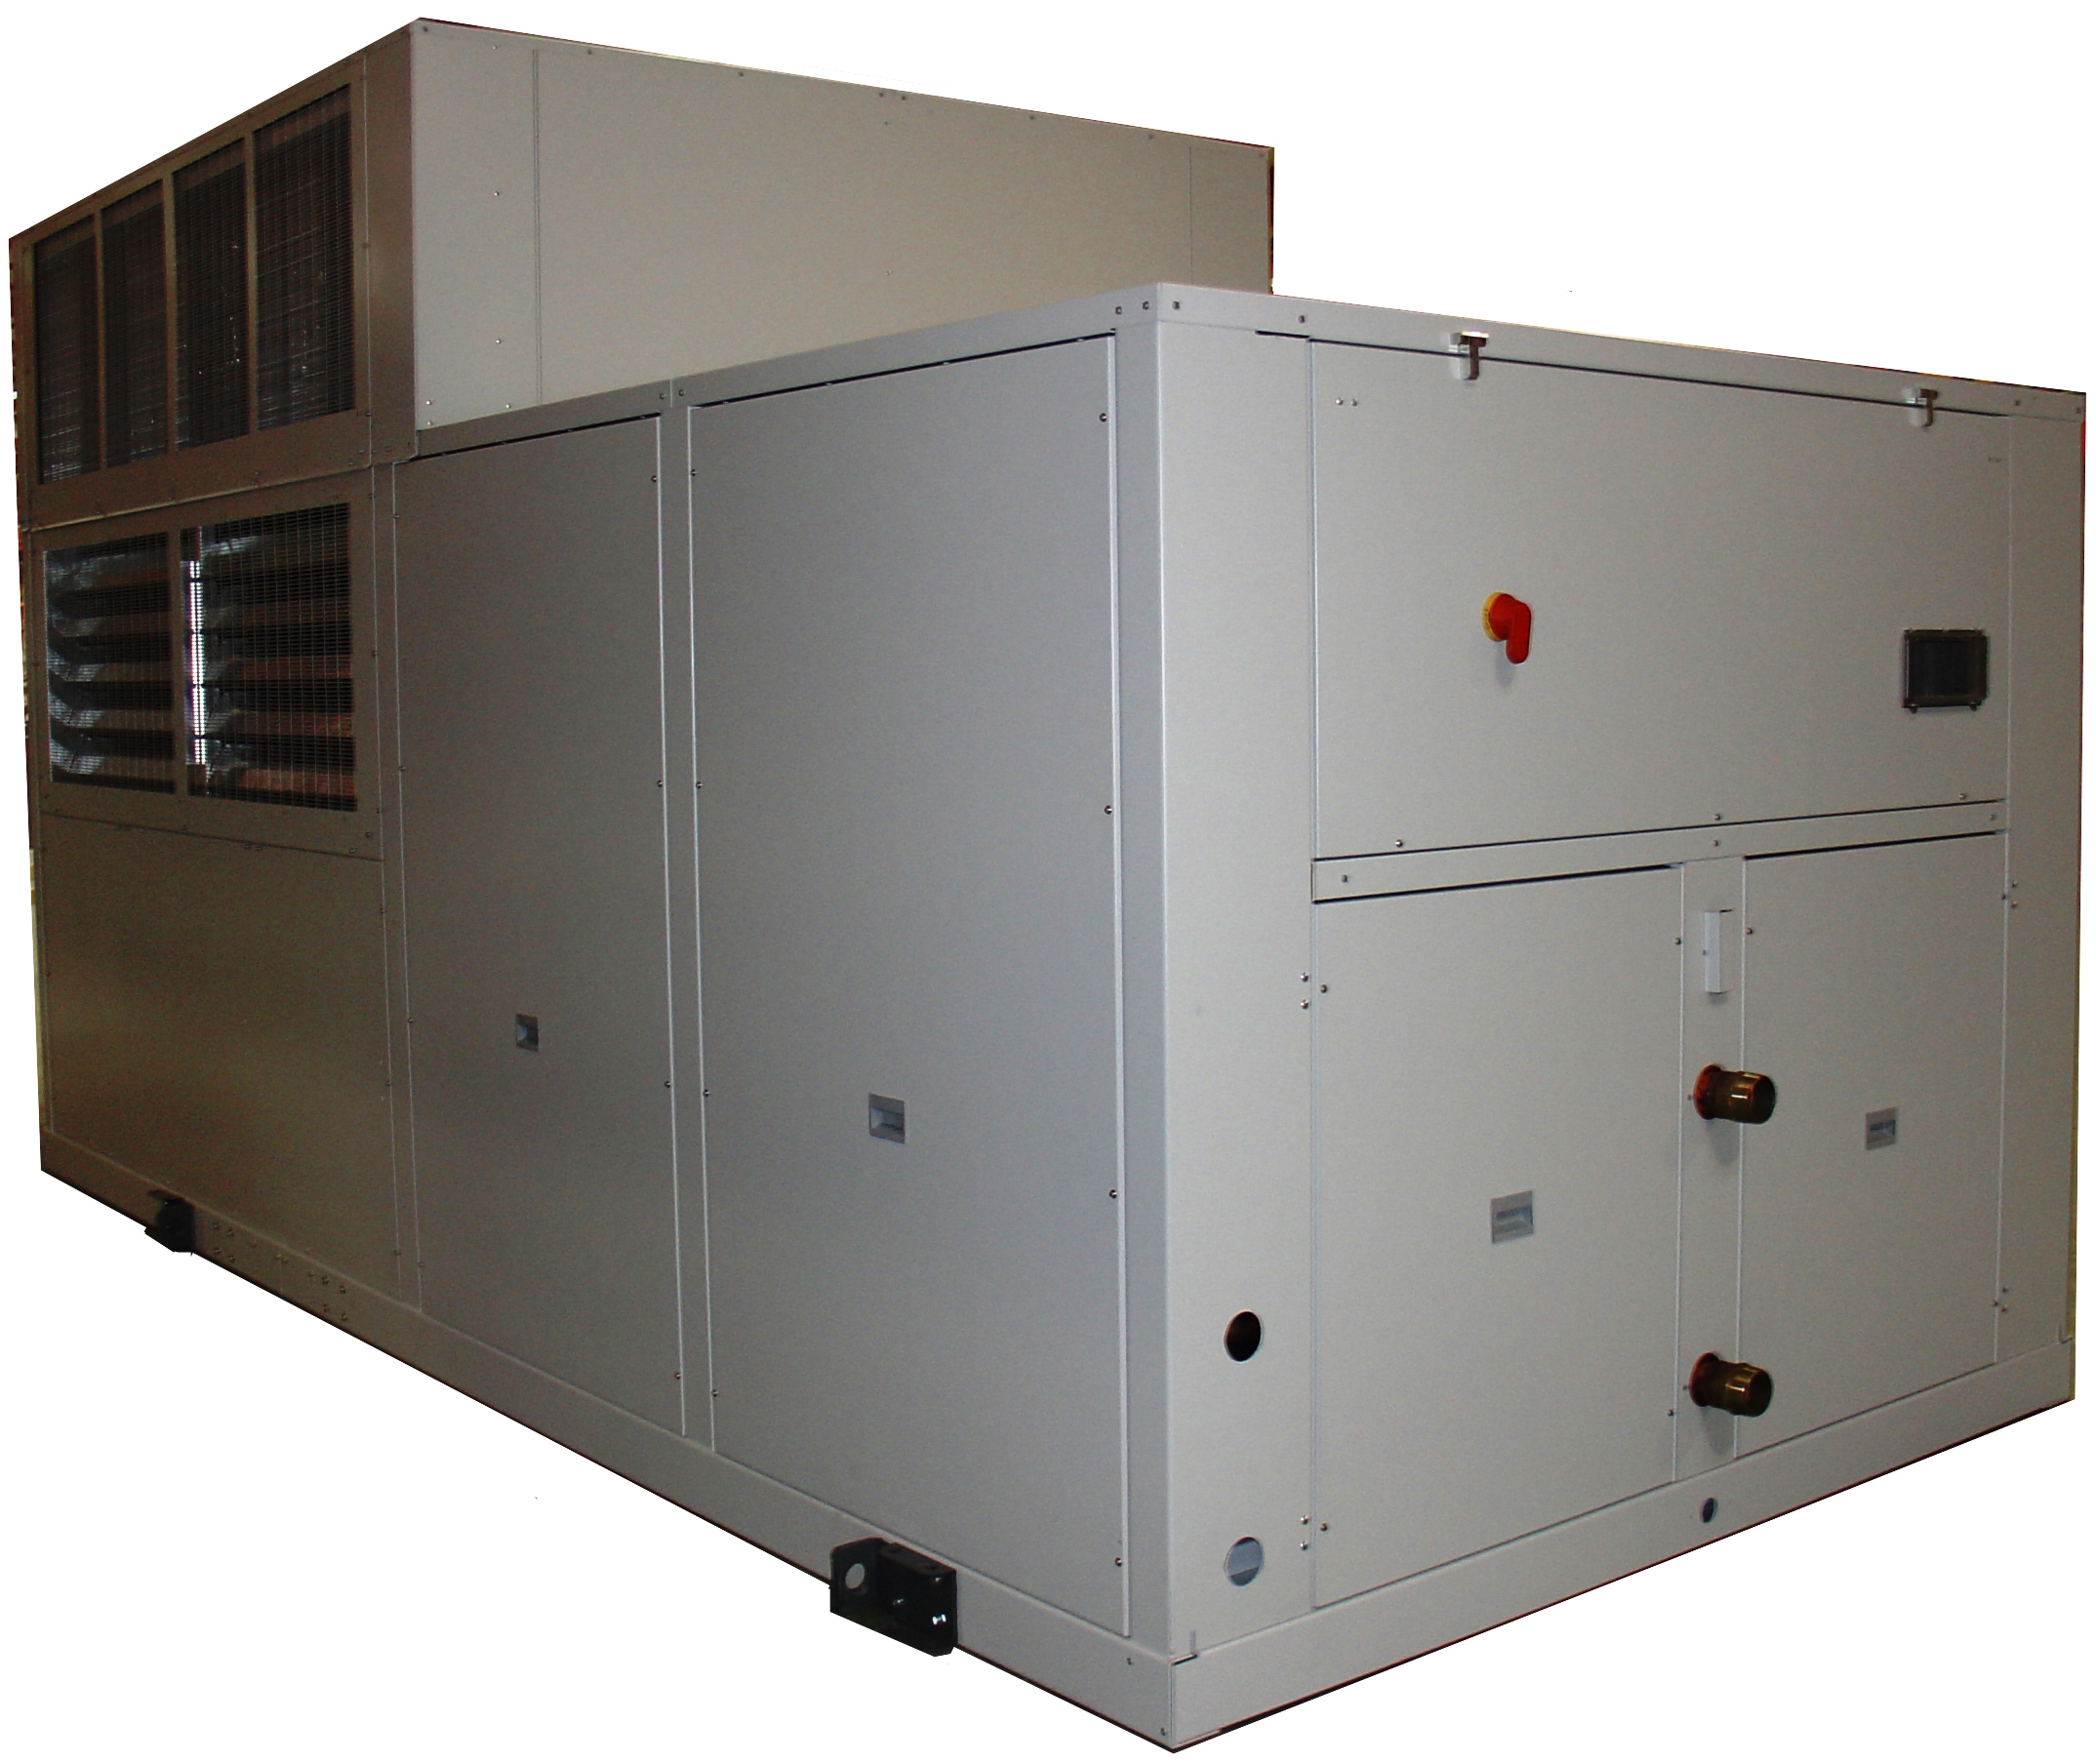 Space Aqua Ciat Air Conditioning And Heating